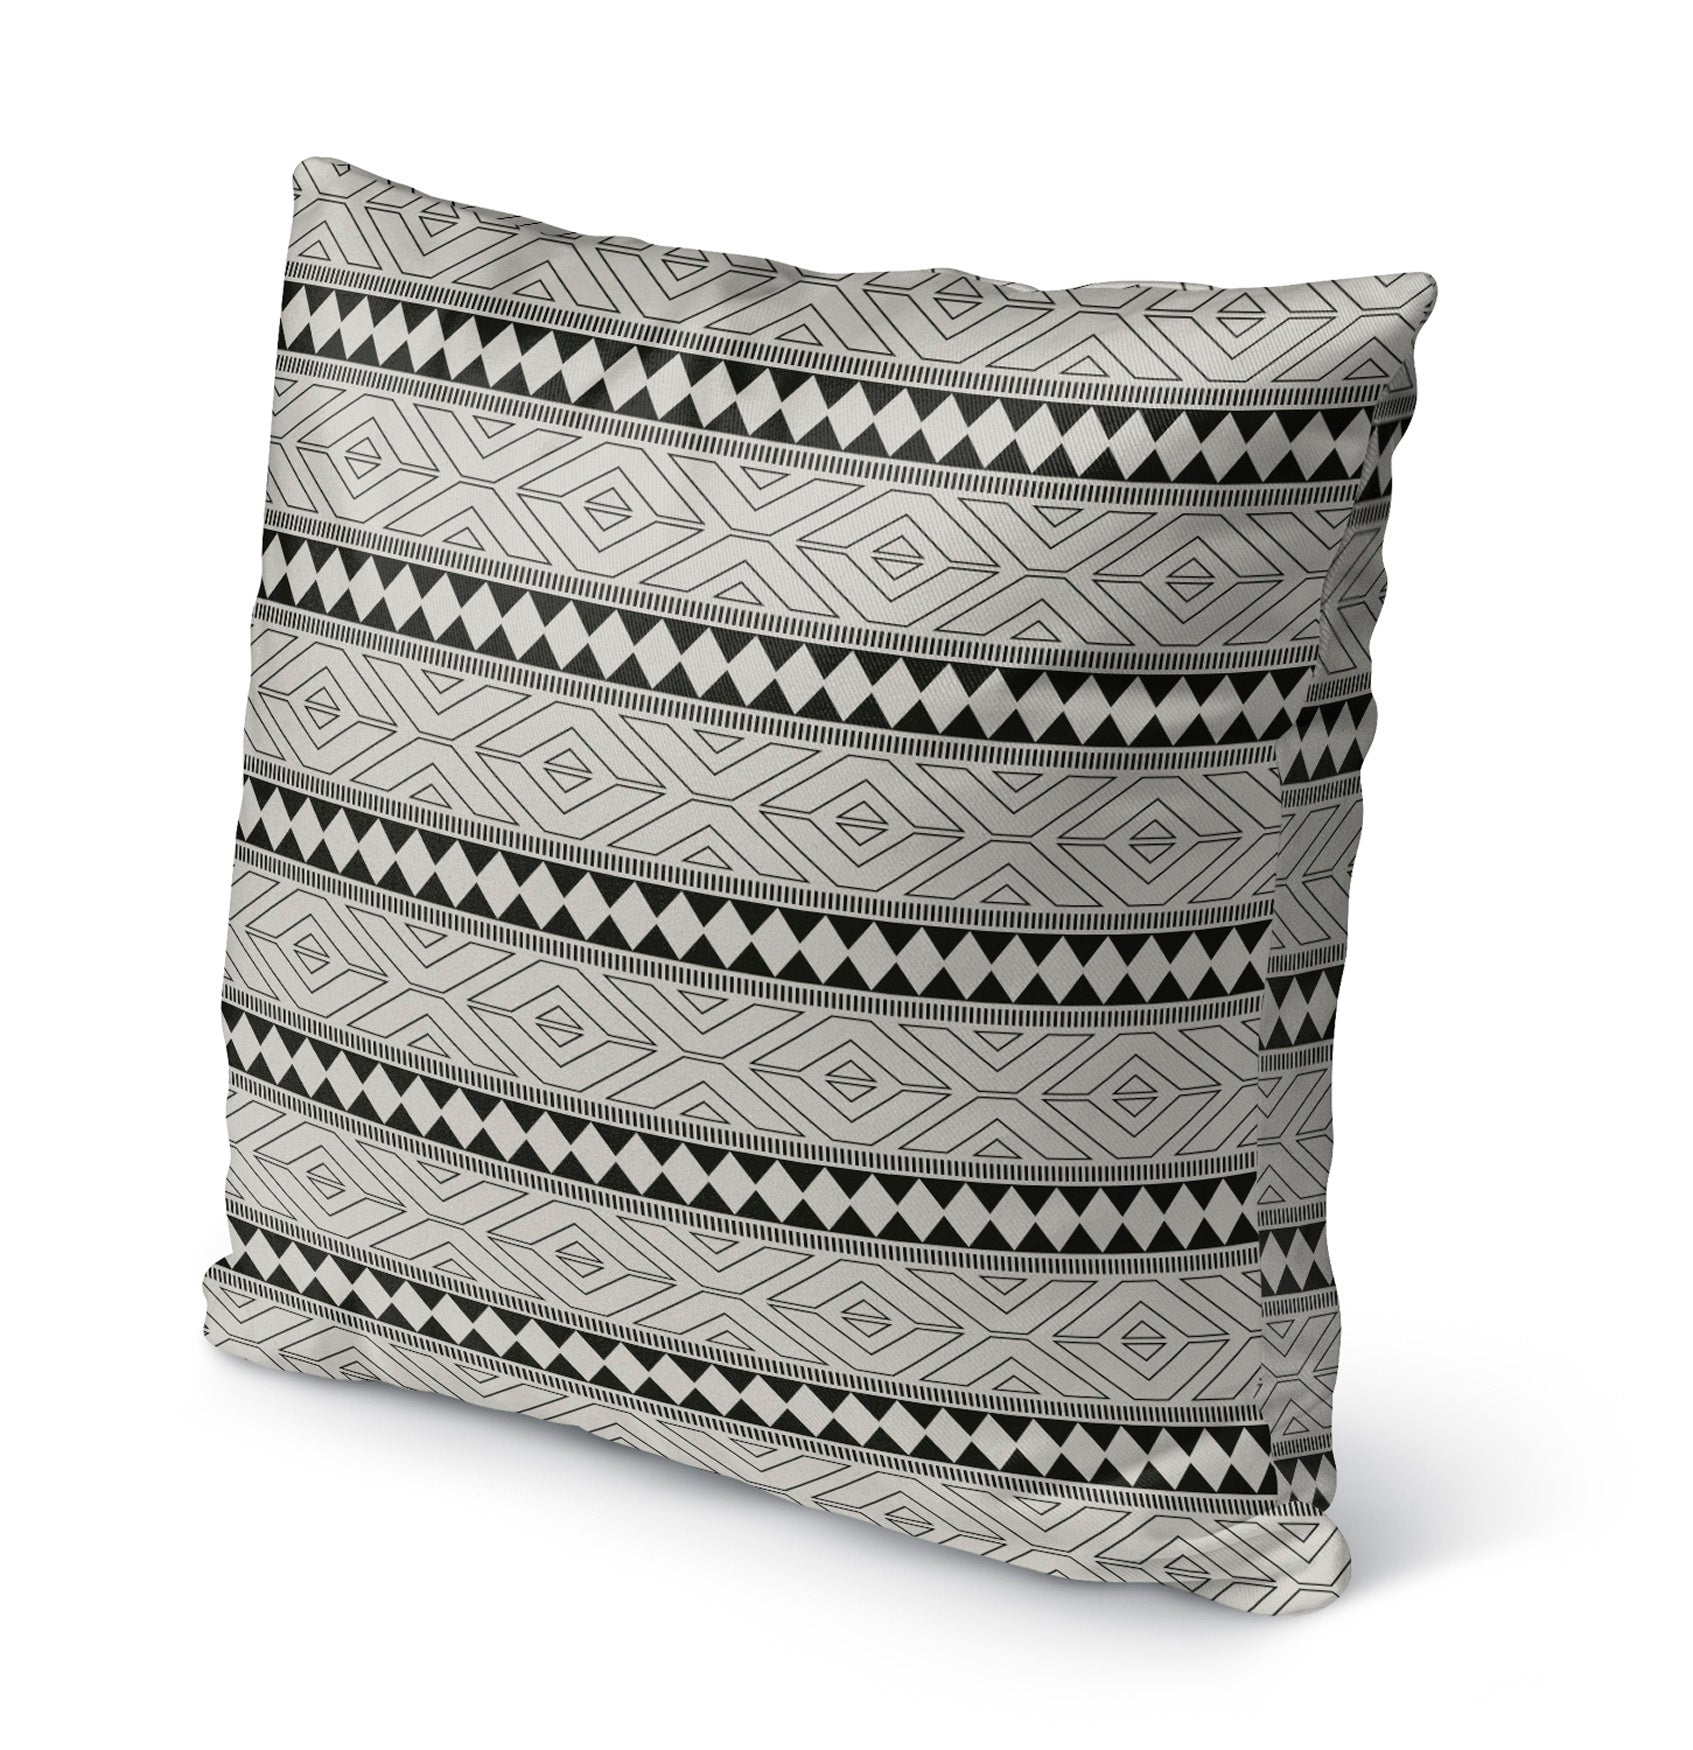 MARRAKESH BLACK Indoor|Outdoor Pillow By Marina Gutierrez